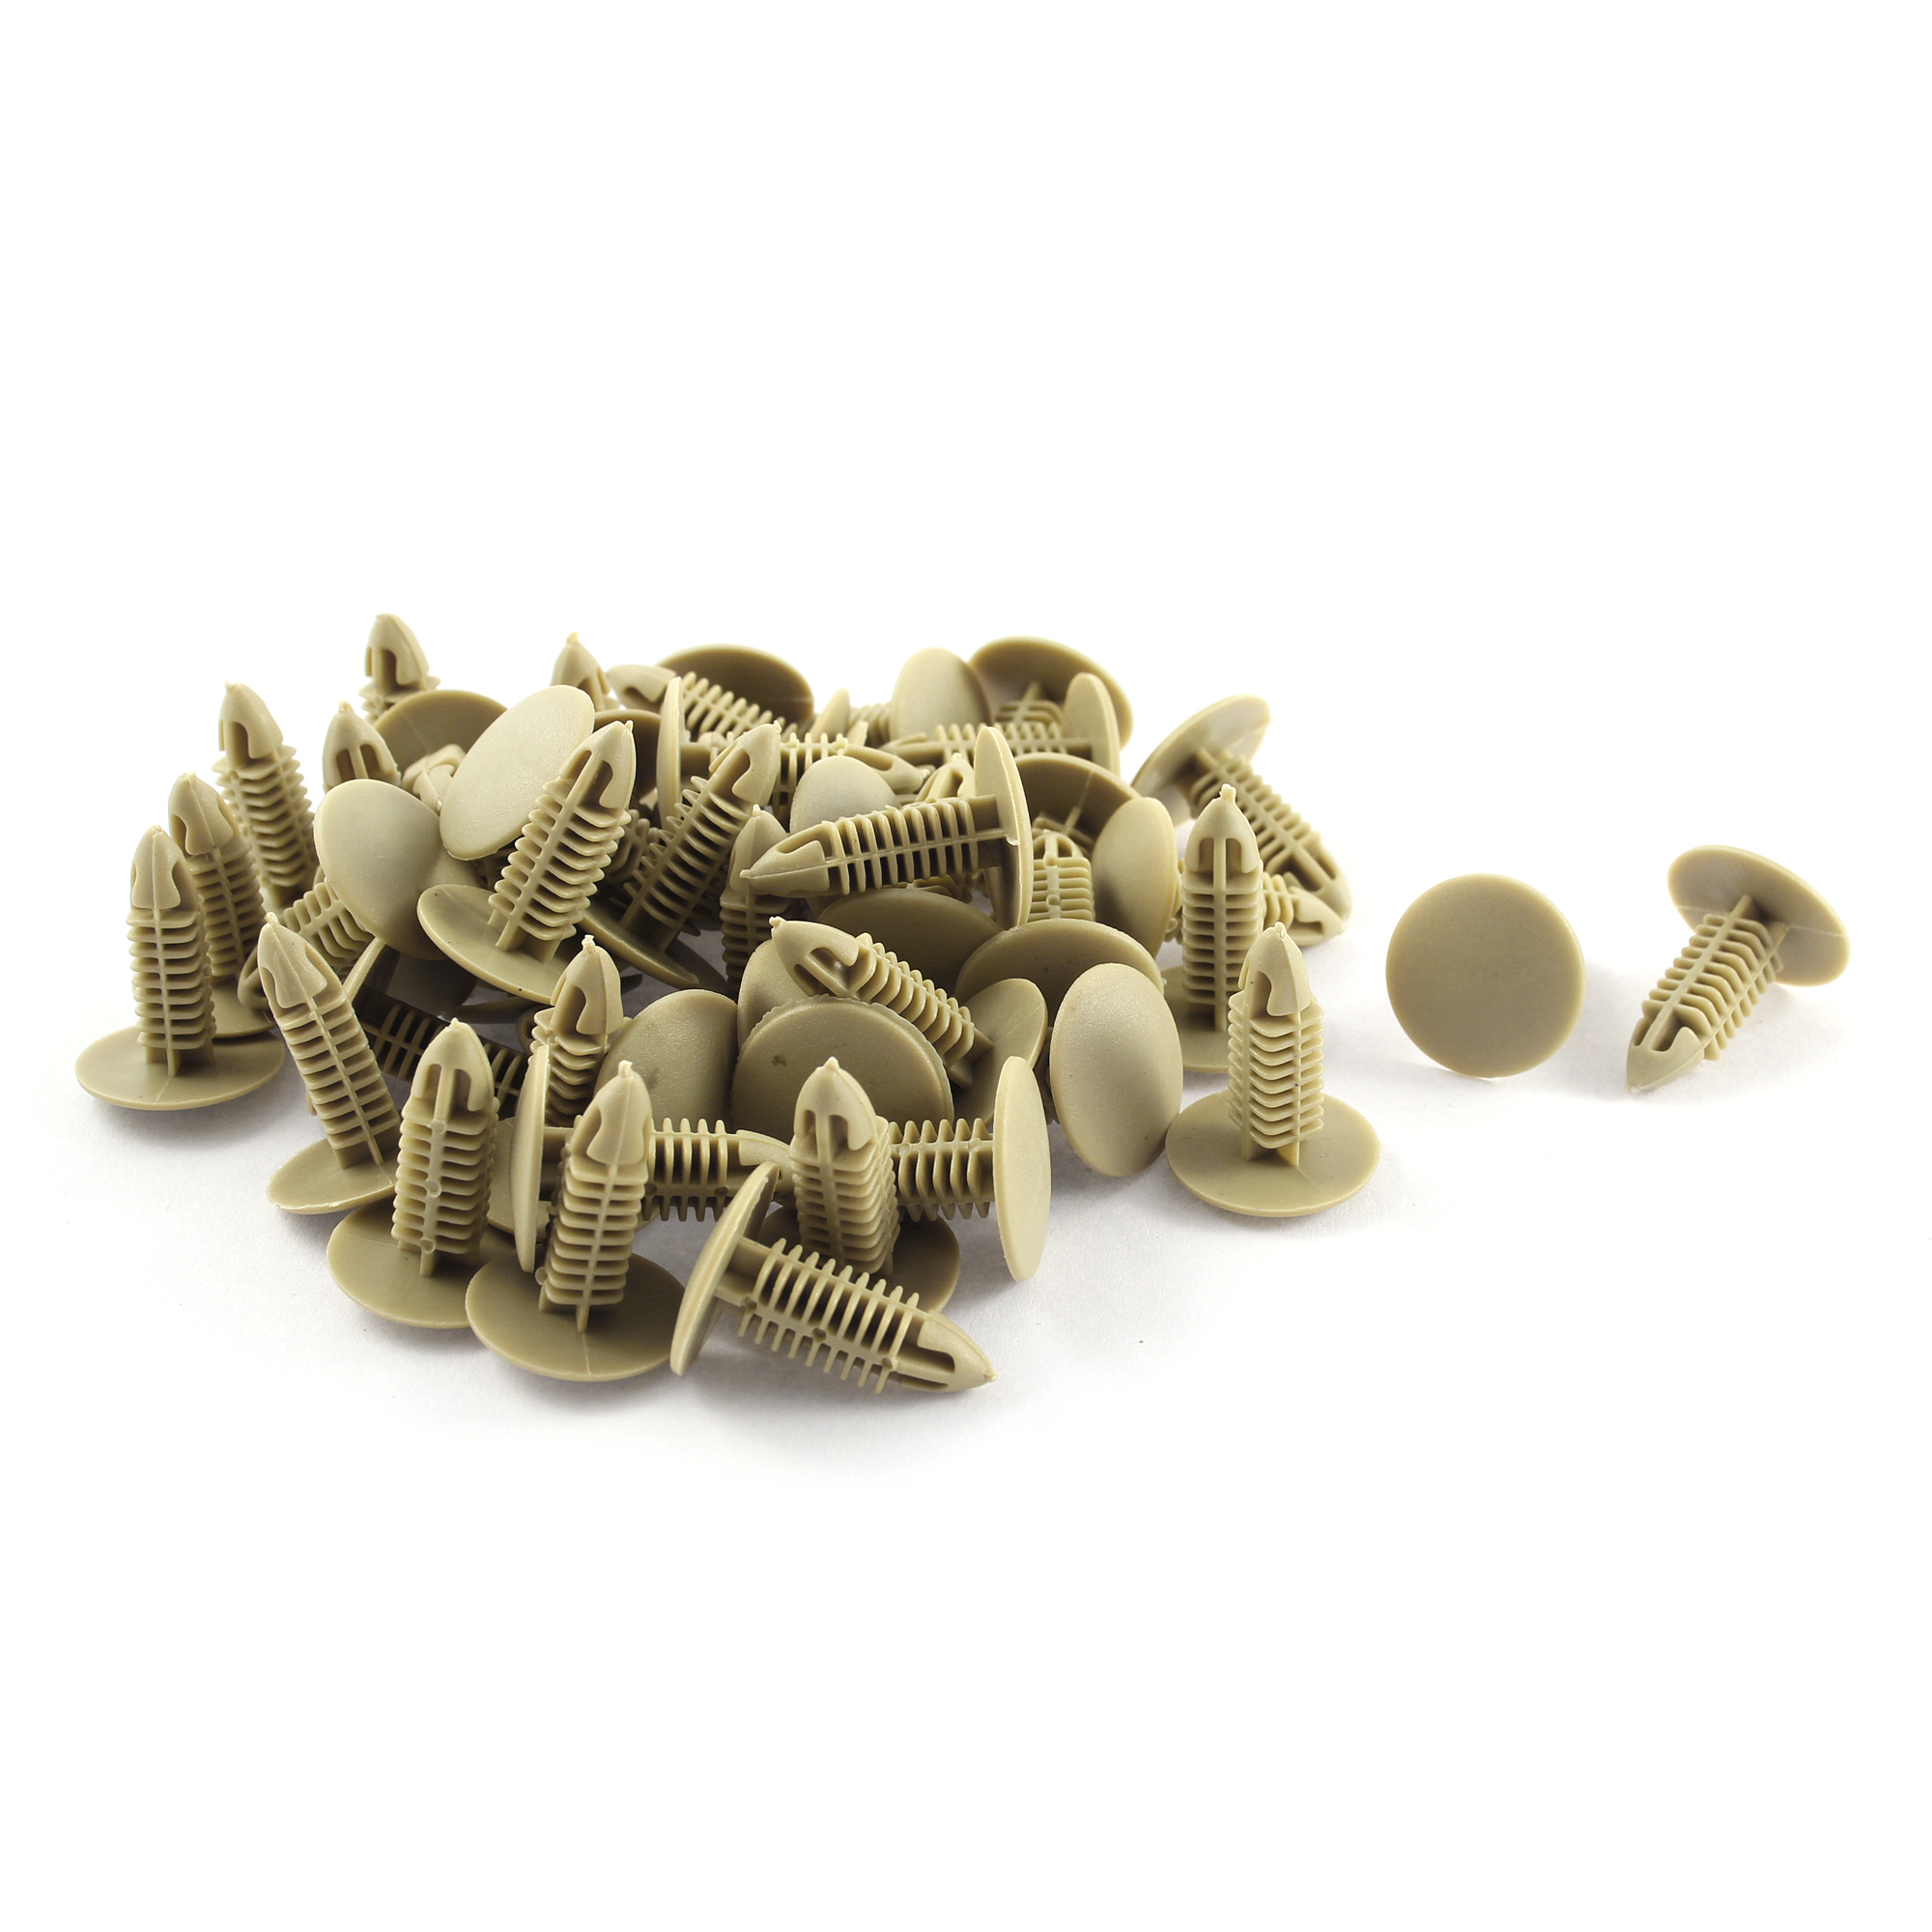 50pcs 6mm Hole Beige Push Plastic Rivets Fastener Door Trim Panel Clip for Car Auto